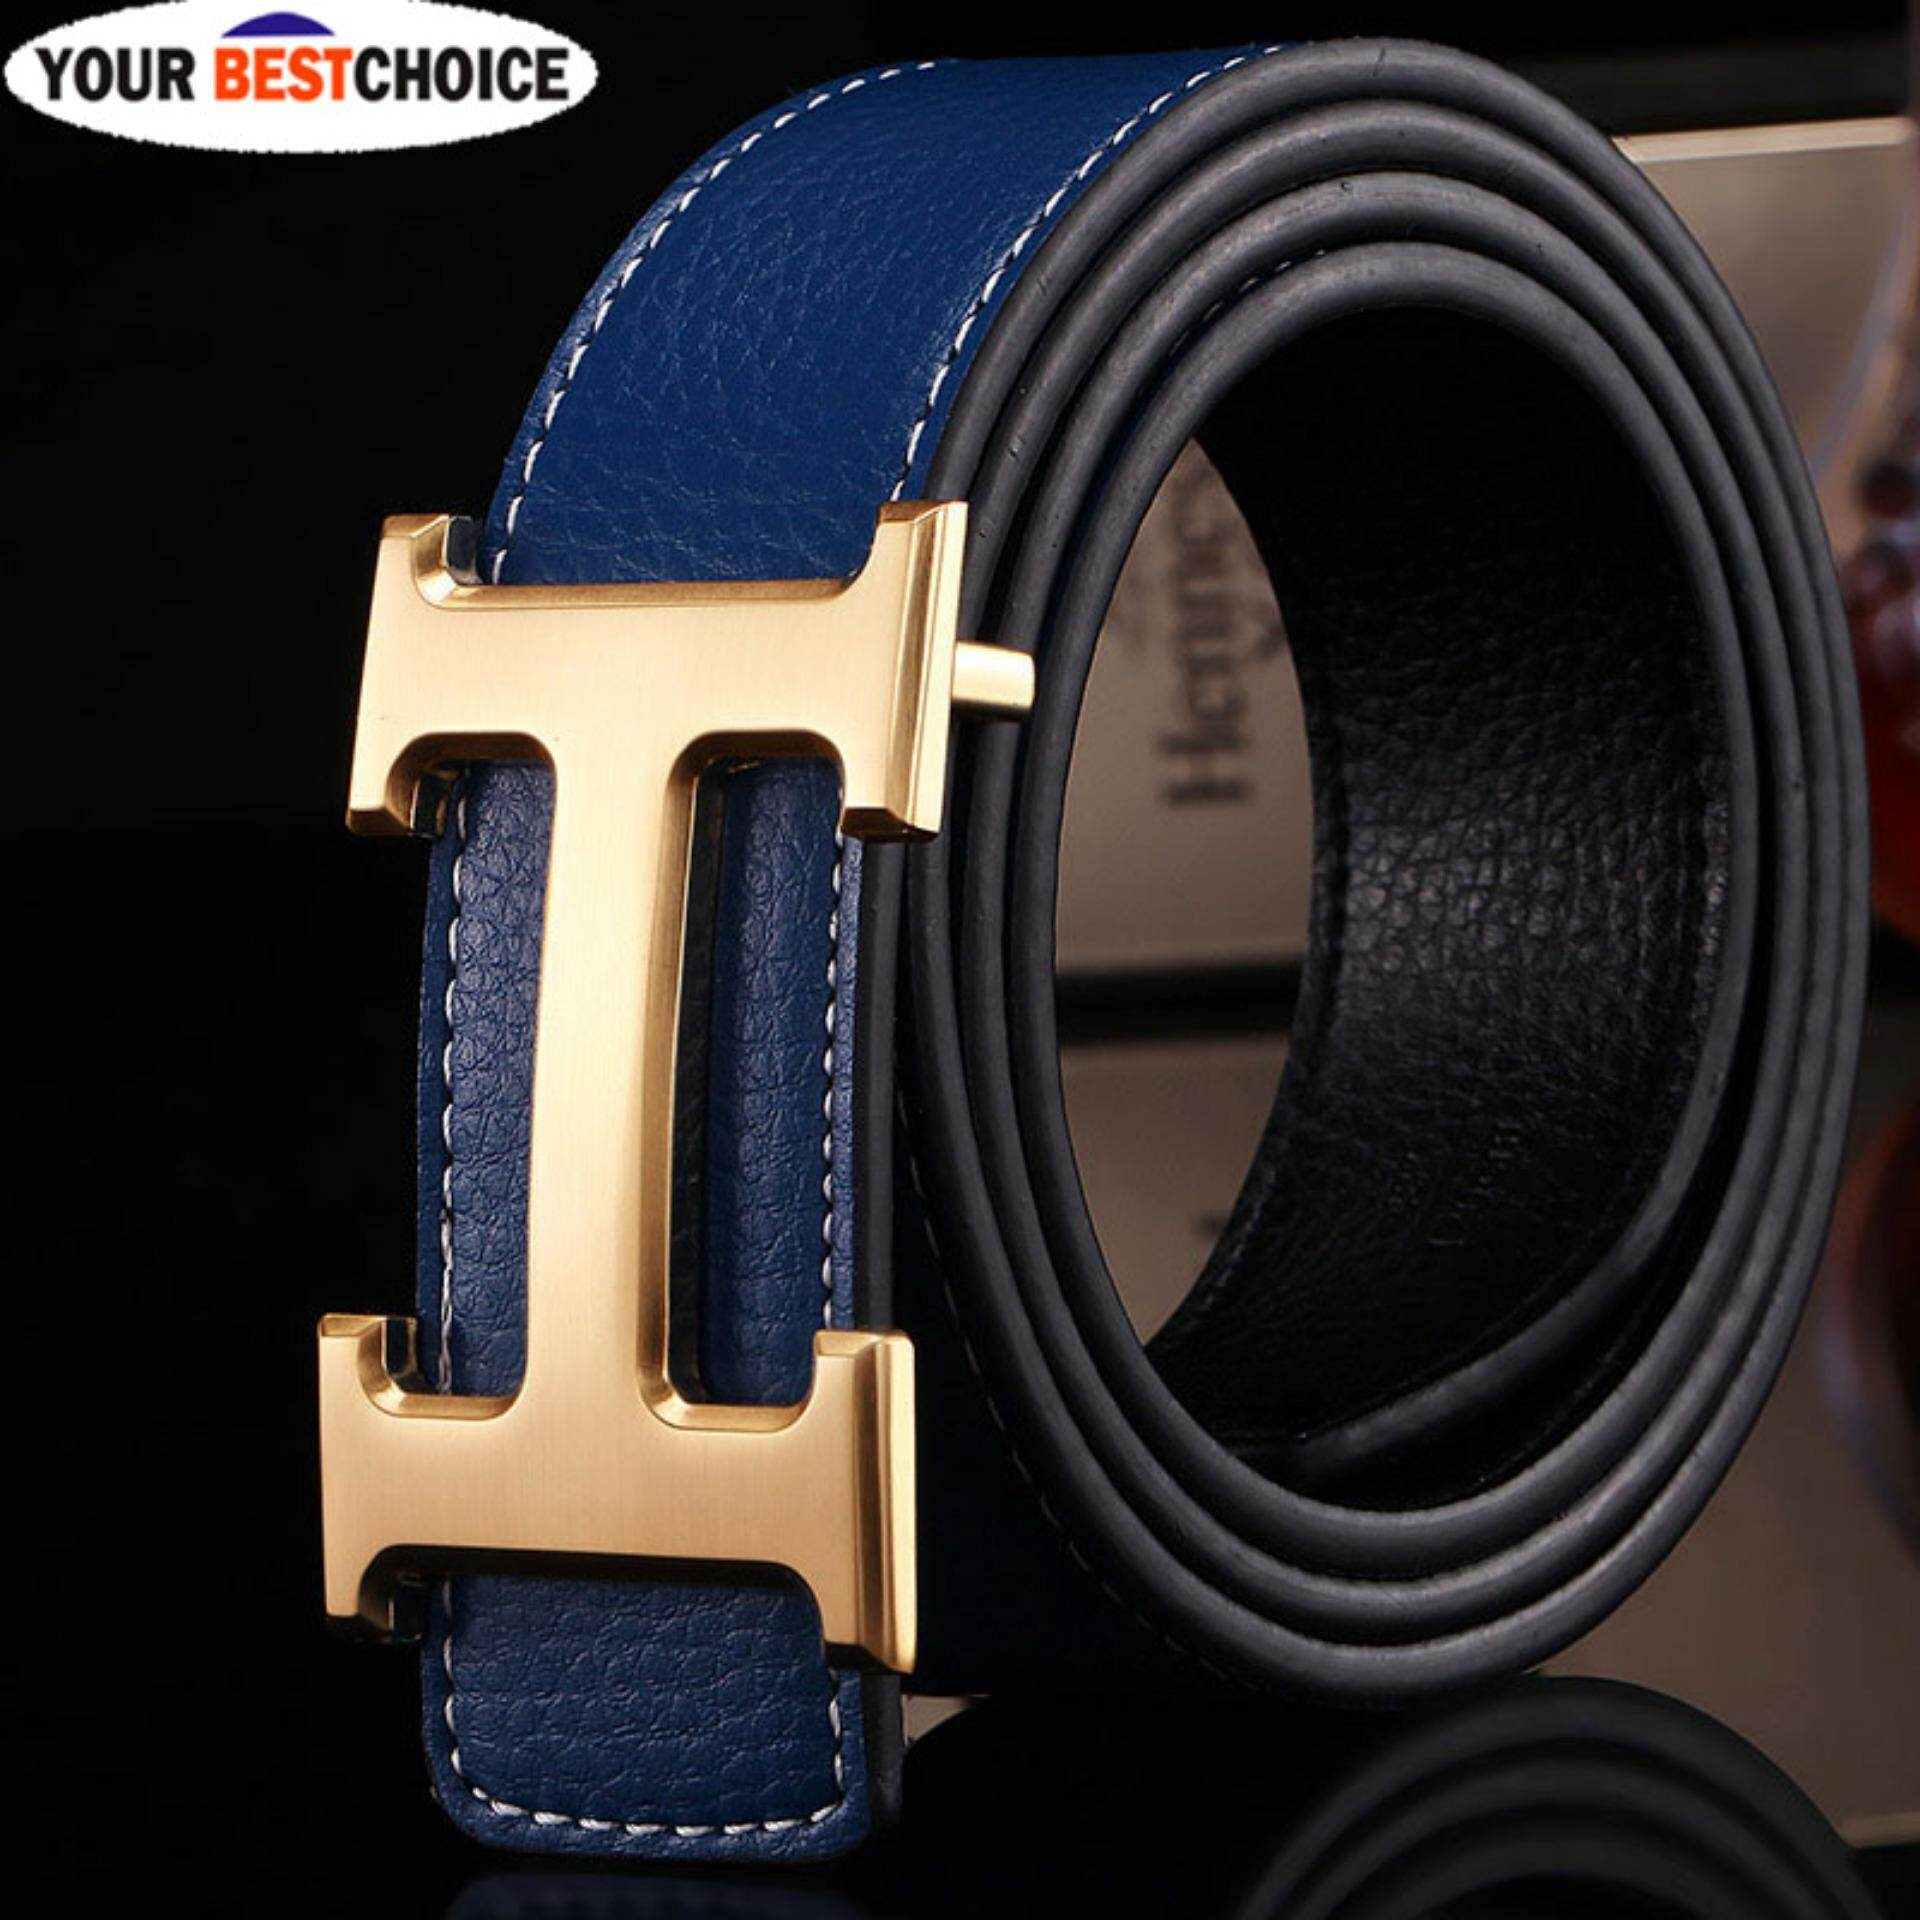 YBC New Style Business Leisure Genuine PU Leather H Smooth Buckle Litchi Grain Belt for Men - intl